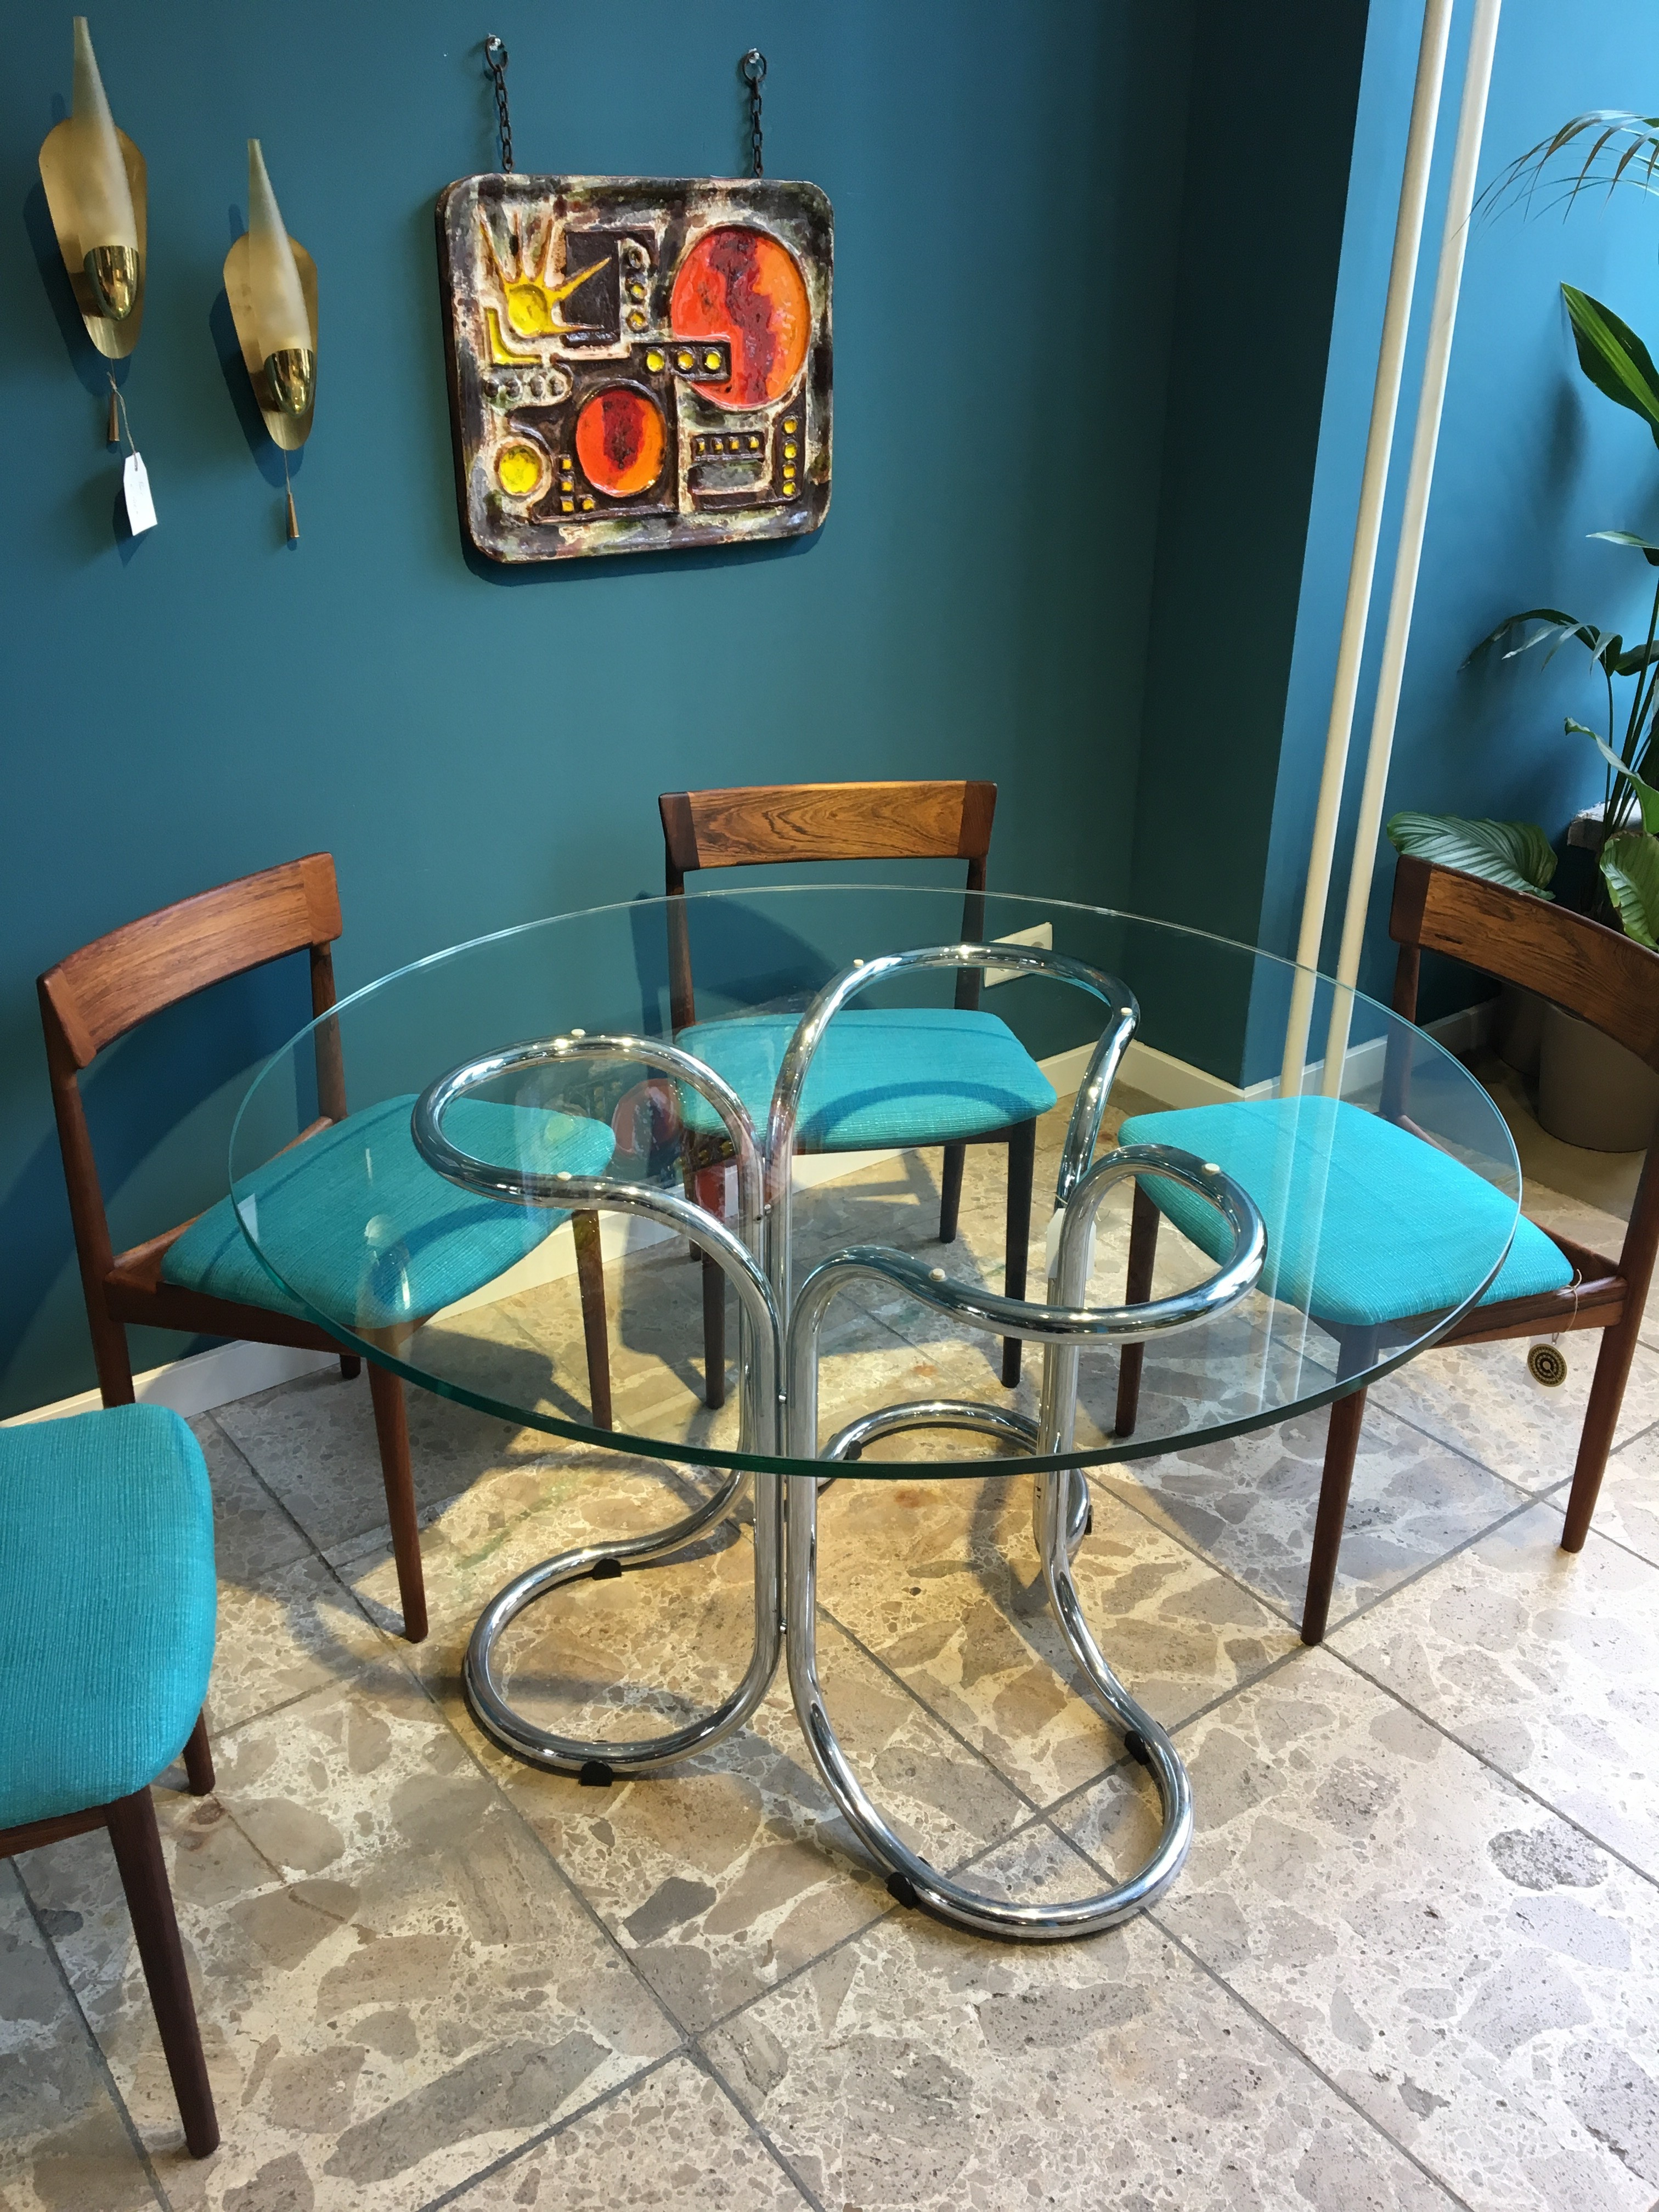 Vintage glass table with metal base - 1960s - Design Market